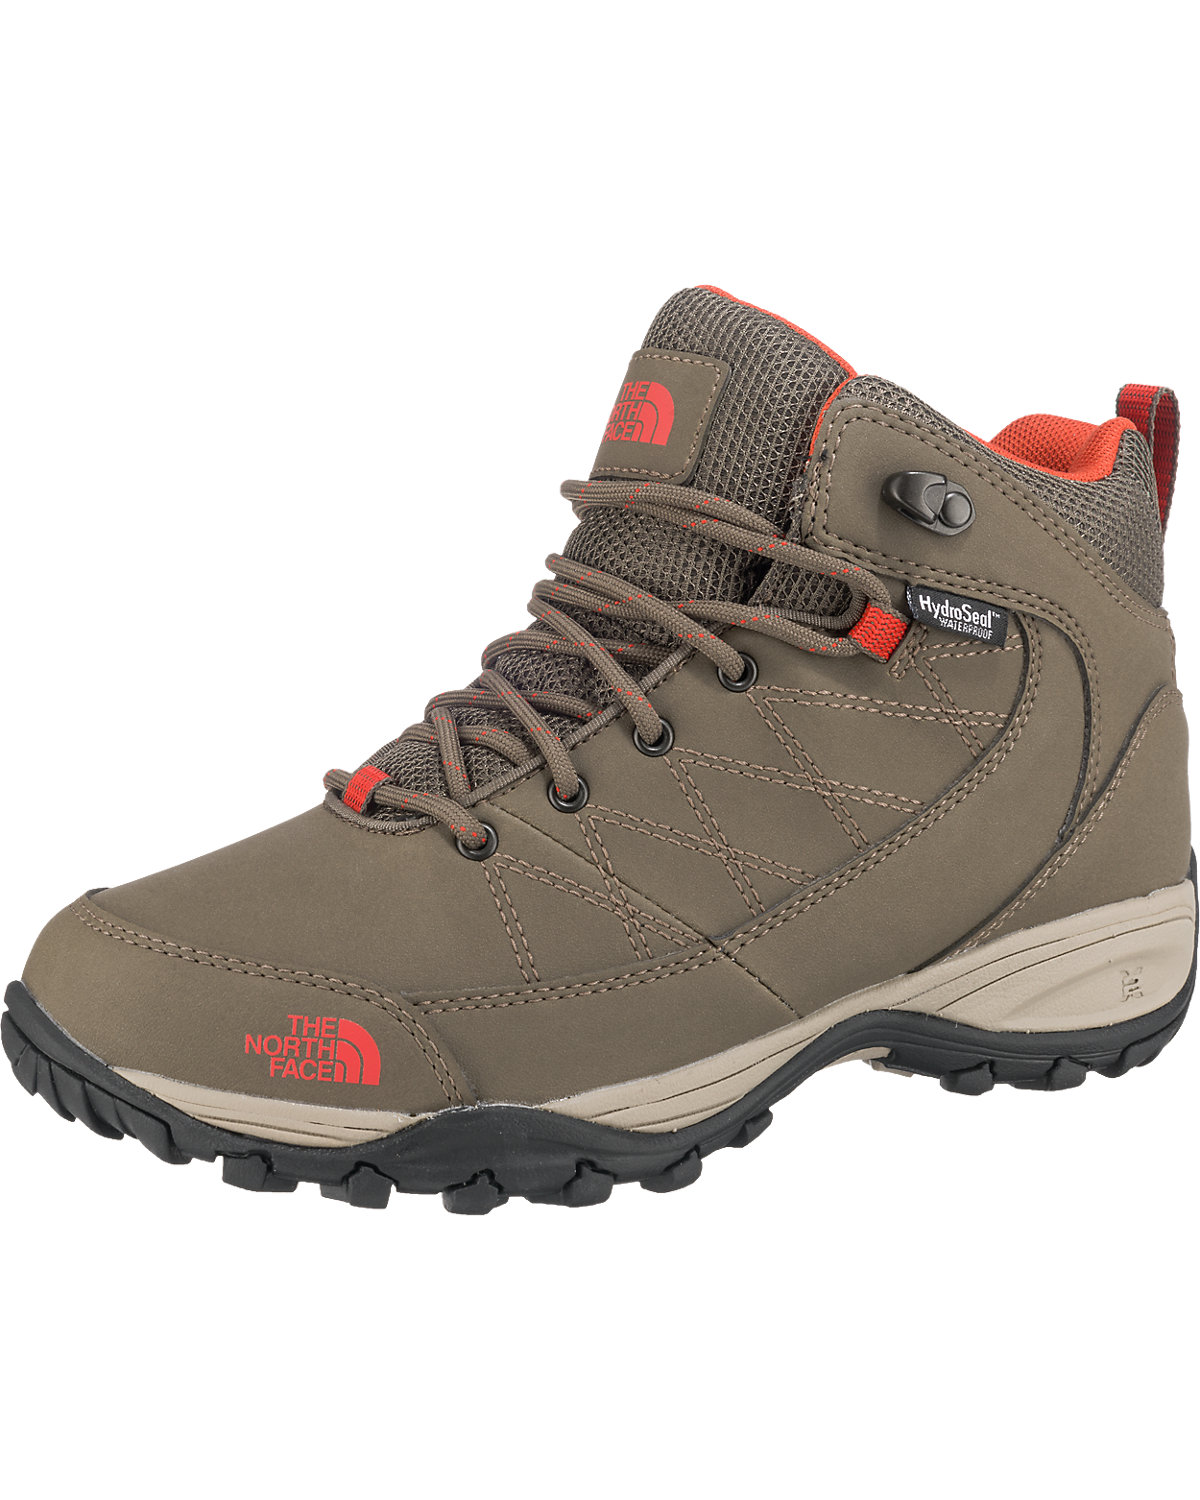 THE NORTH FACE, Women's Storm Strike WP Wanderstiefel, braun